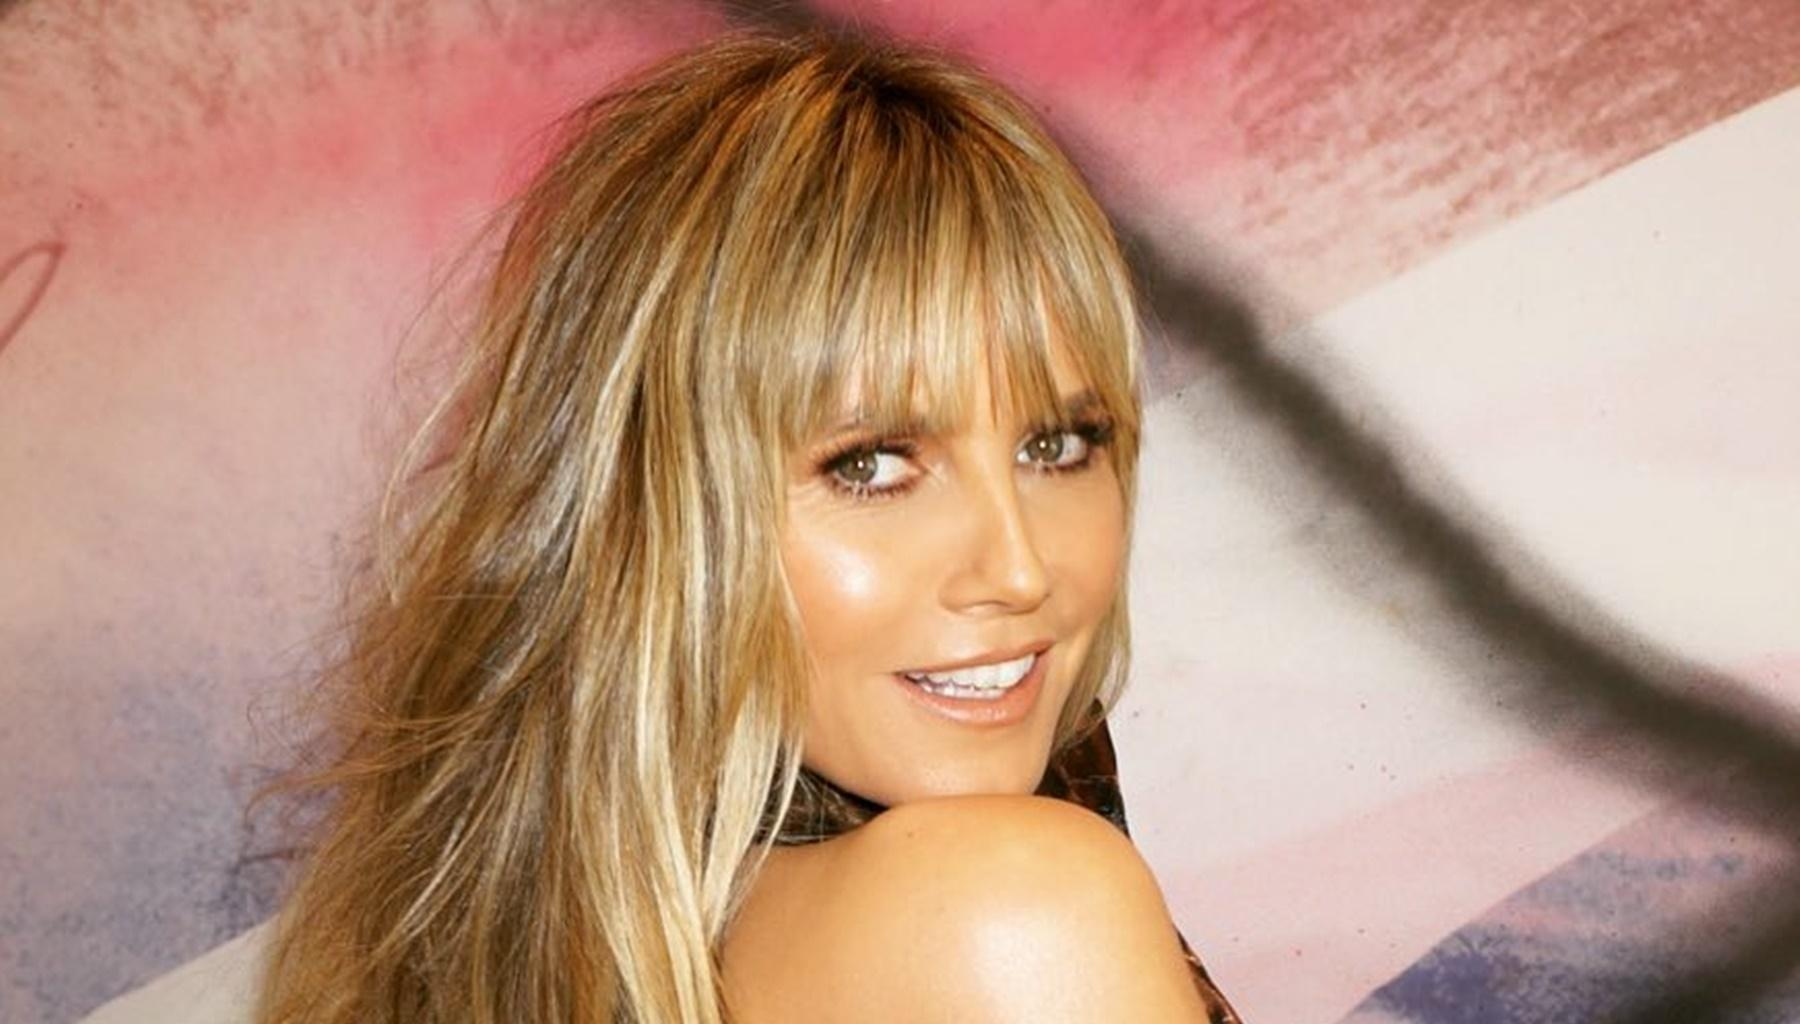 Heidi Klum Is Doing 'Too Much' With New Revealing Video According To Some Fans -- Did Tom Kaulitz's Partner Go Too Far?